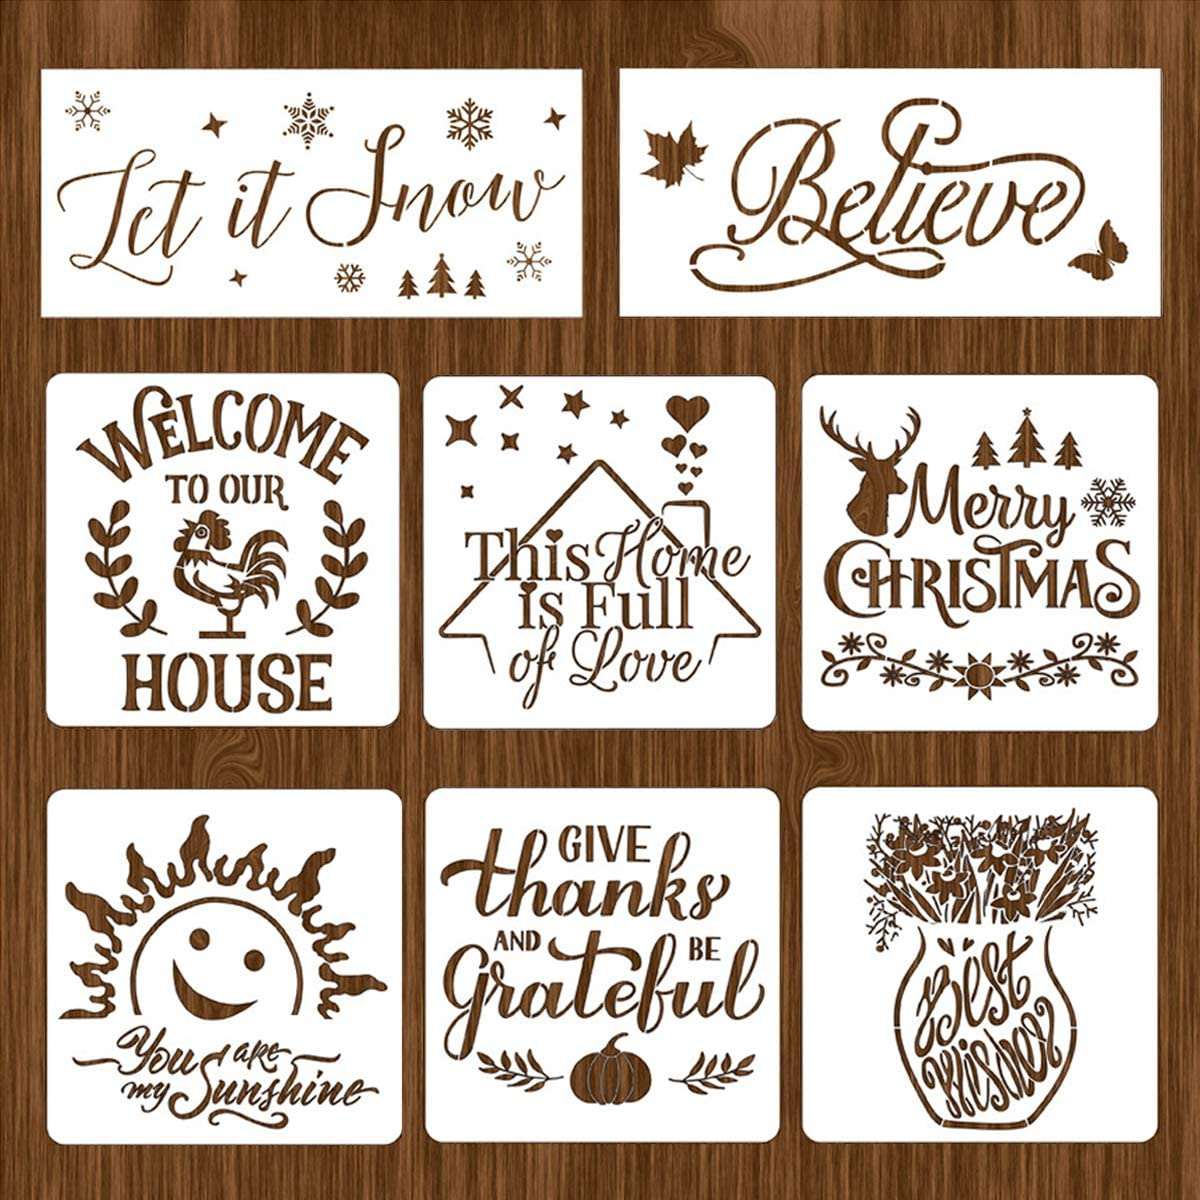 Zeanla Stencils,Reusable Painting Stencils,DIY Art Home Decoration Drawing Templates Christmas Word Letter Stencil for Painting on Wood Wall Fabric Canvas Paper - 8 Pieces